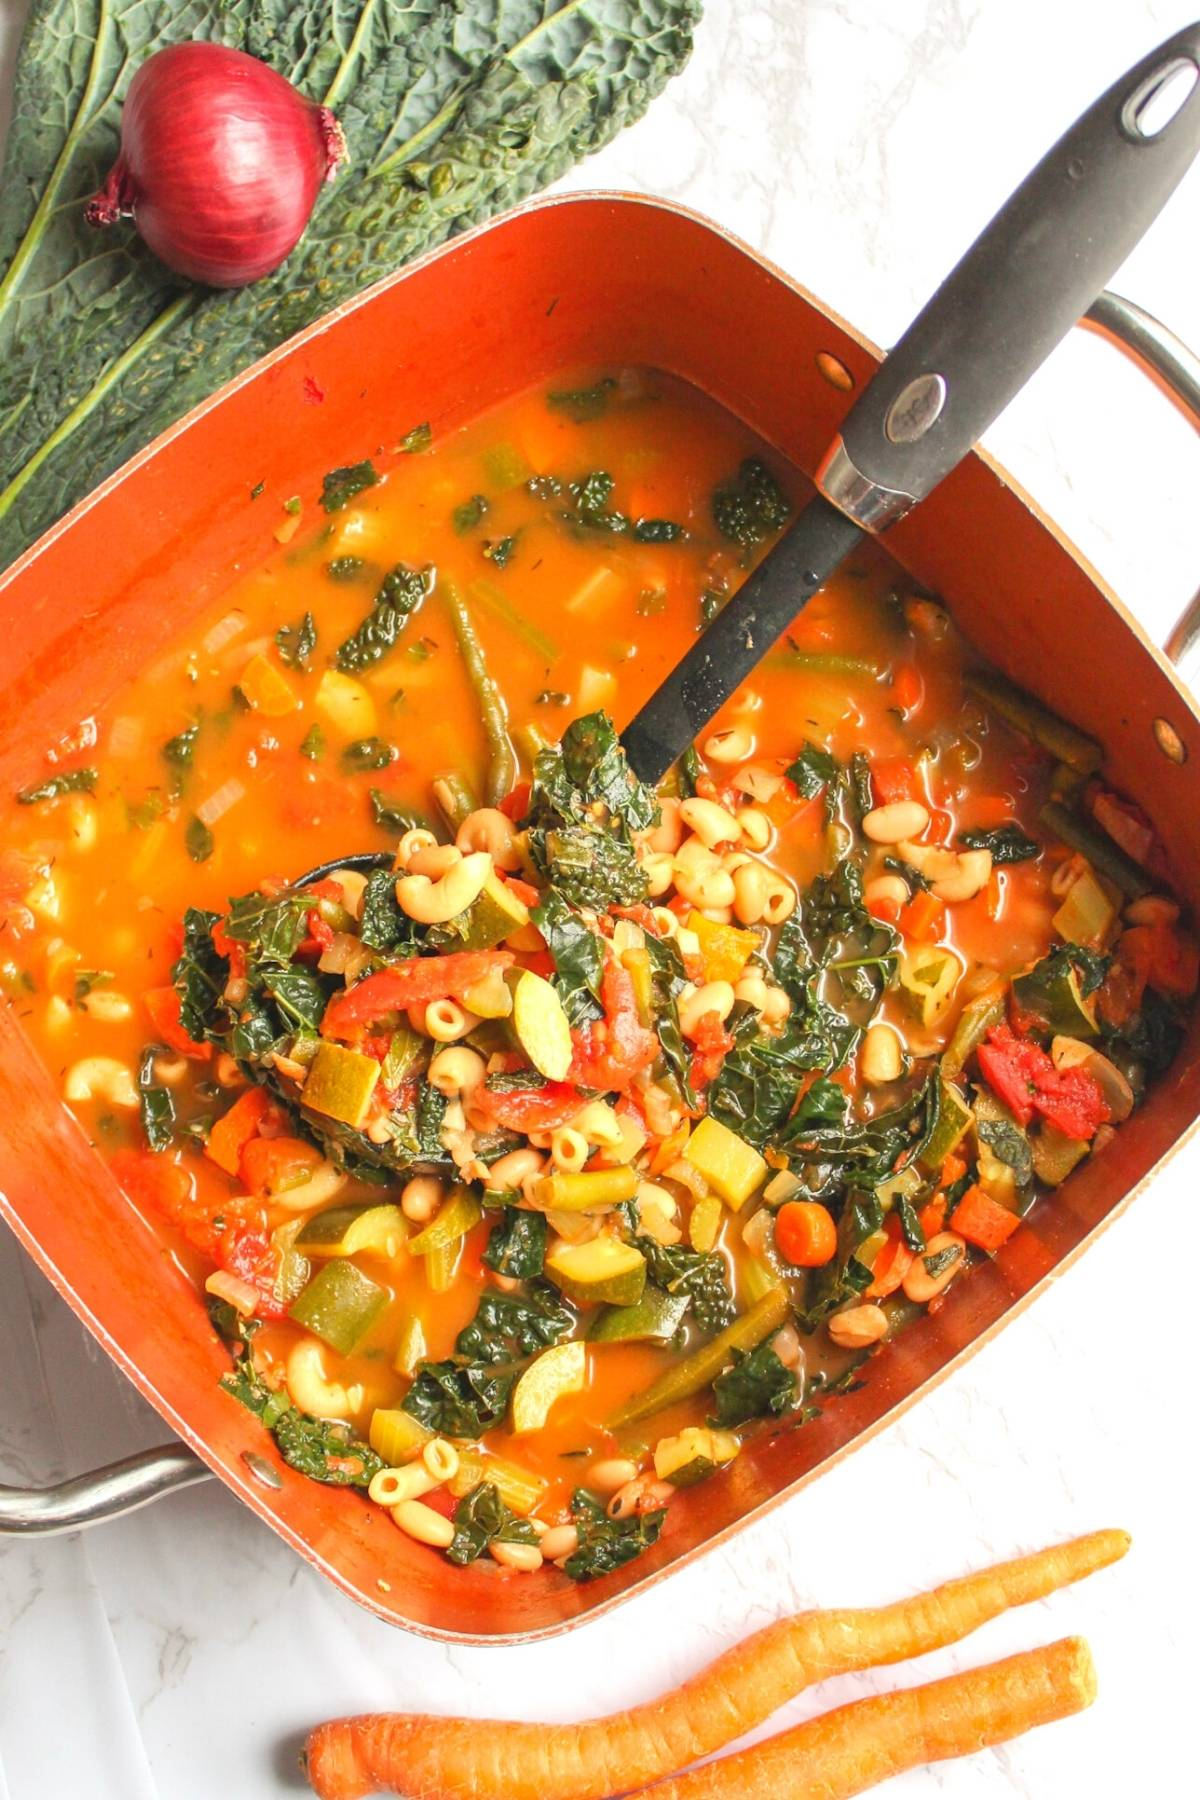 Vegan minestrone soup in a large soup pan with a ladle.